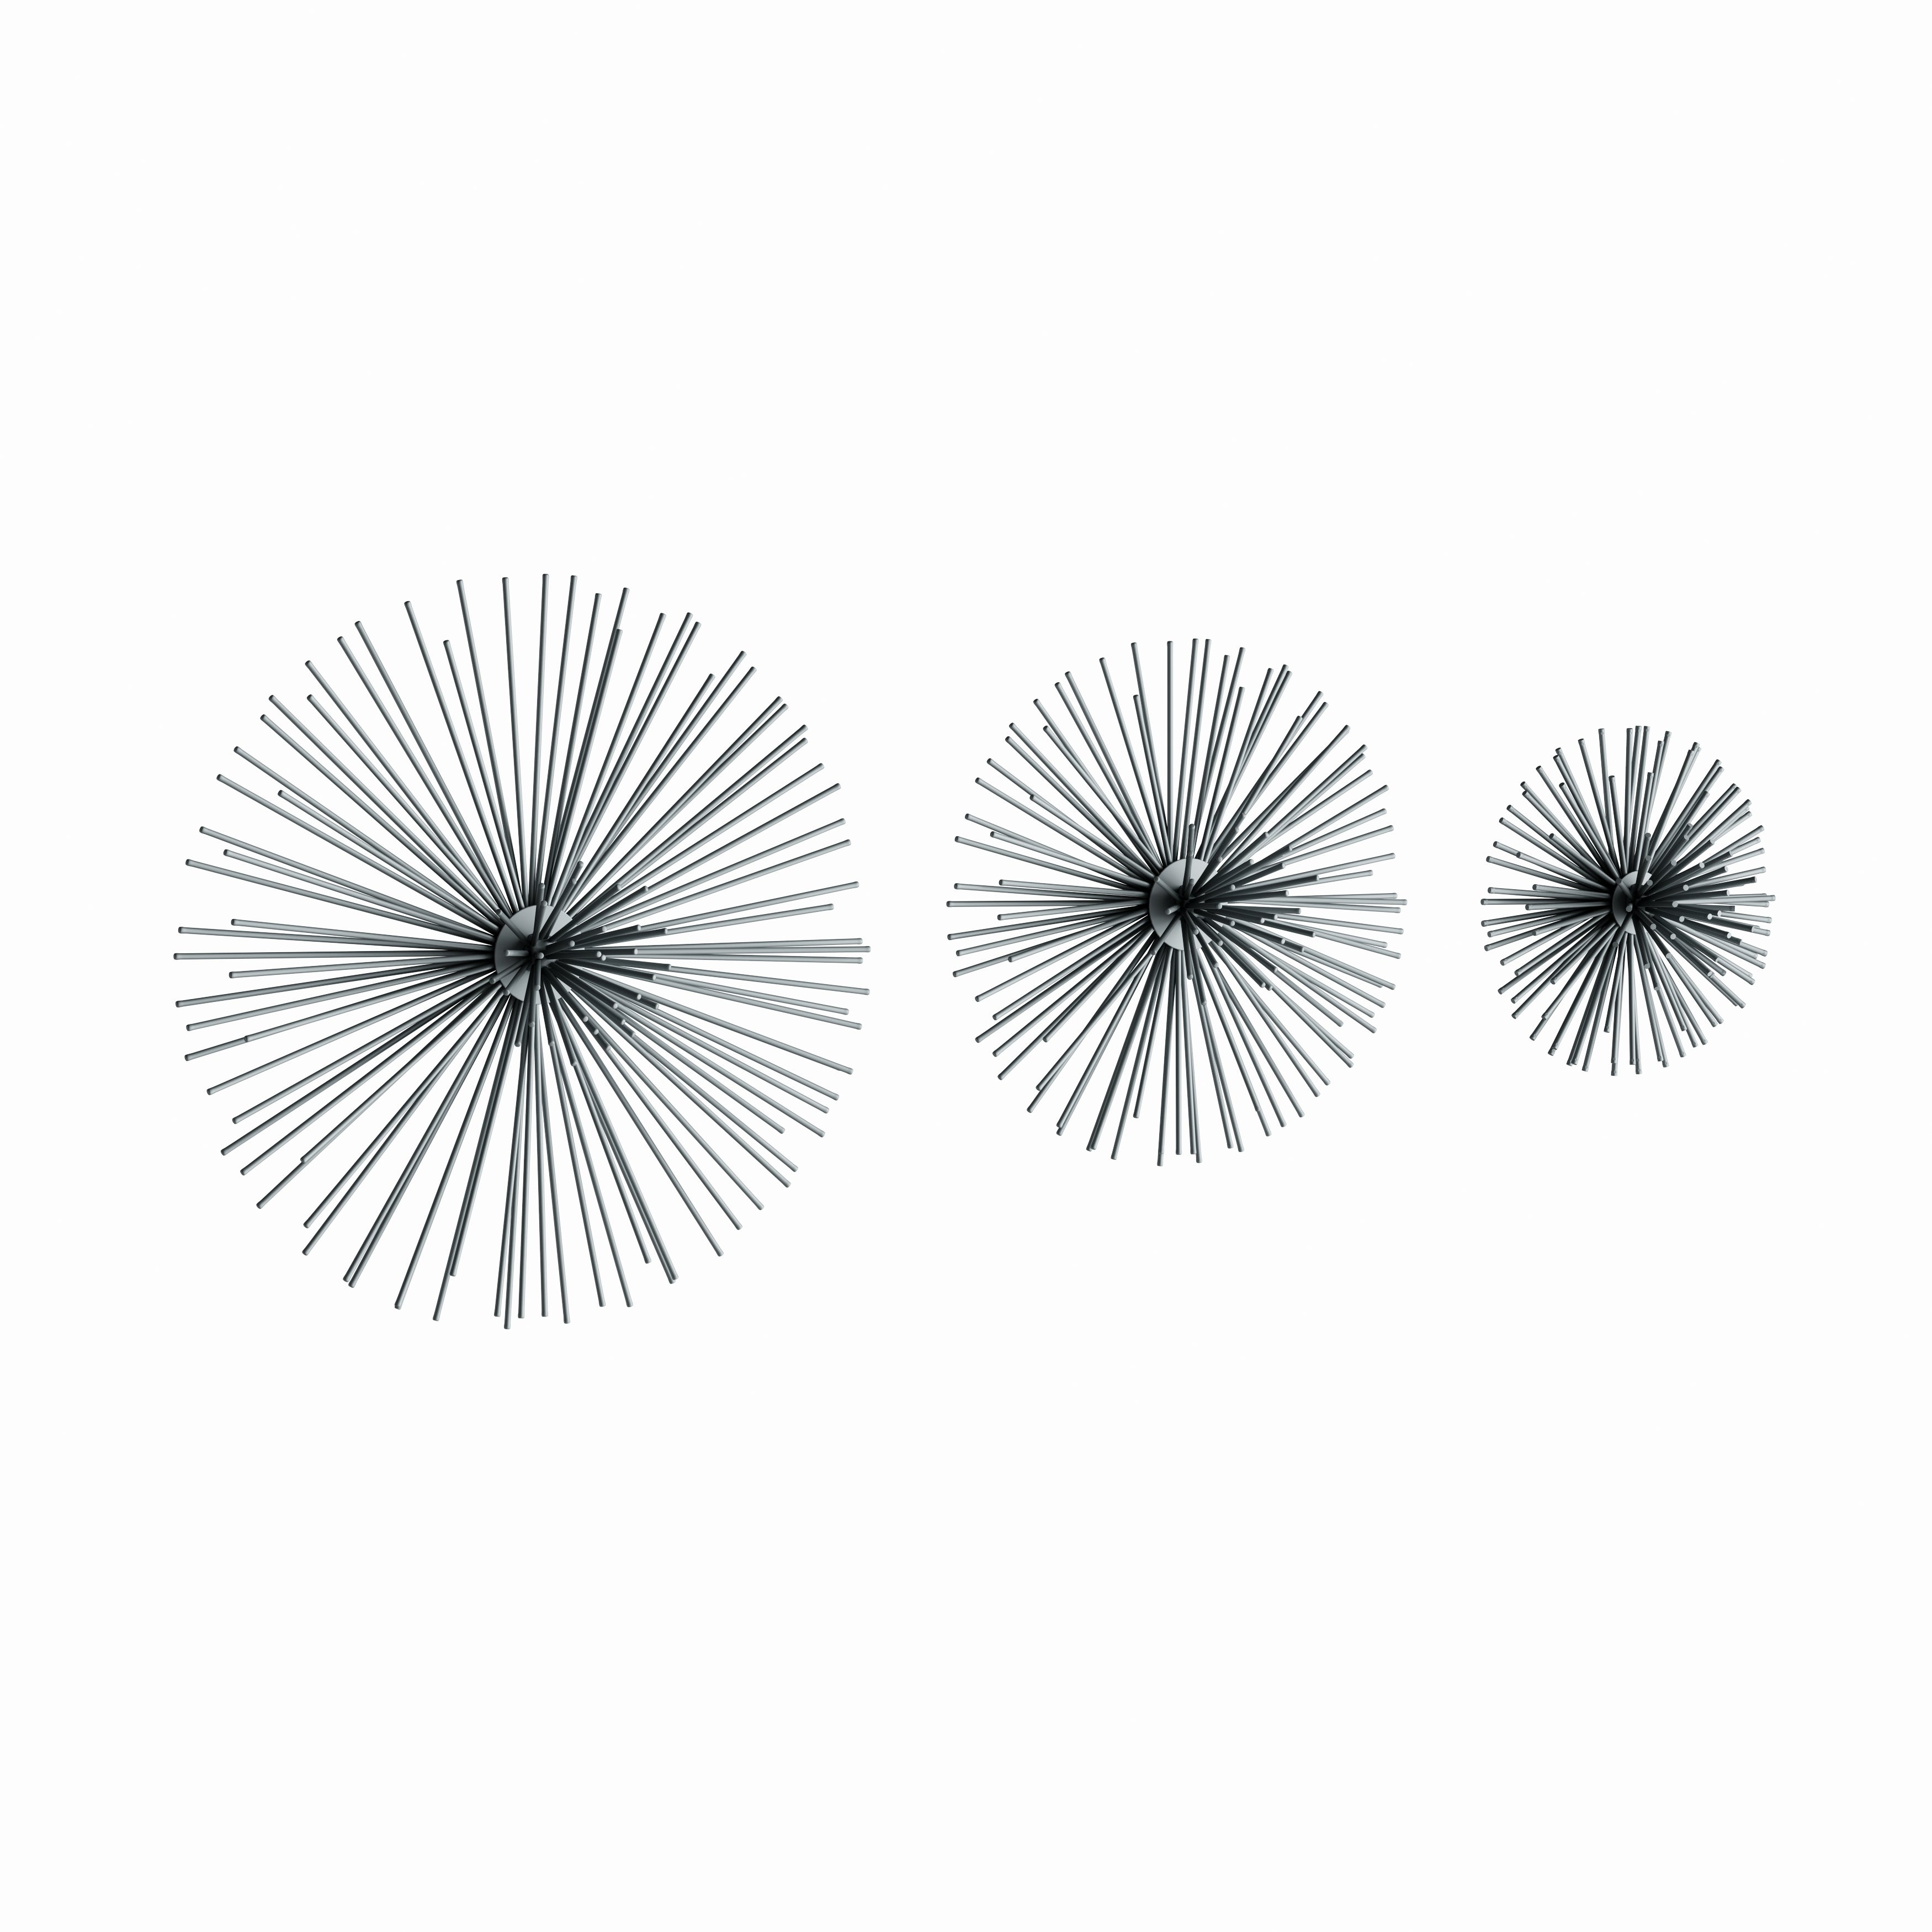 Contemporary 3d Silver Metal Starburst Wall Decor Sculptures Set Of 3 In Starburst Wall Decor (View 8 of 30)